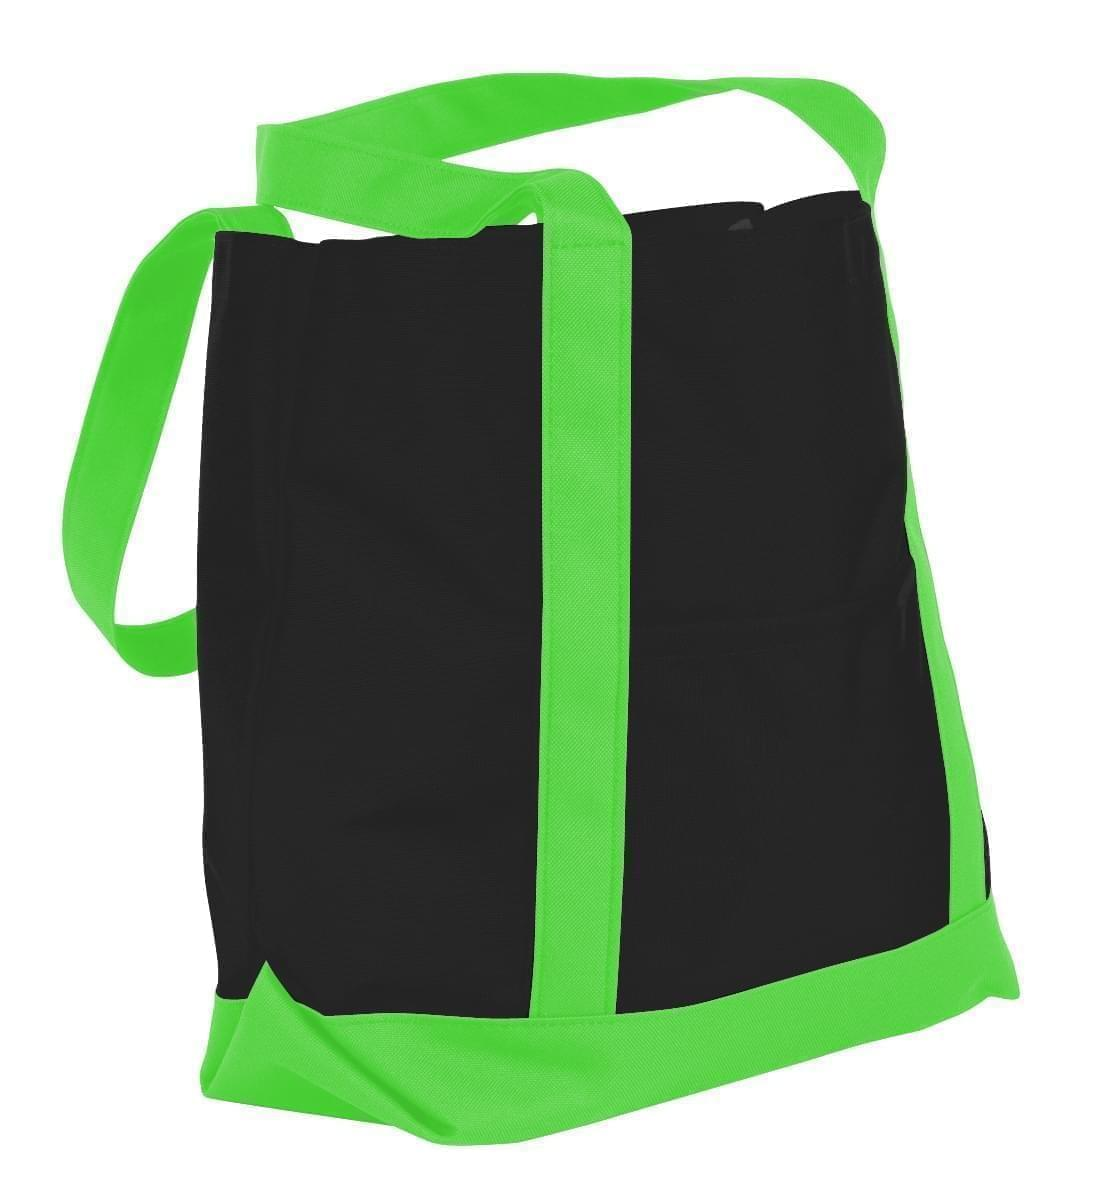 USA Made Nylon Poly Boat Tote Bags, Black-Lime, XAACL1UAOY